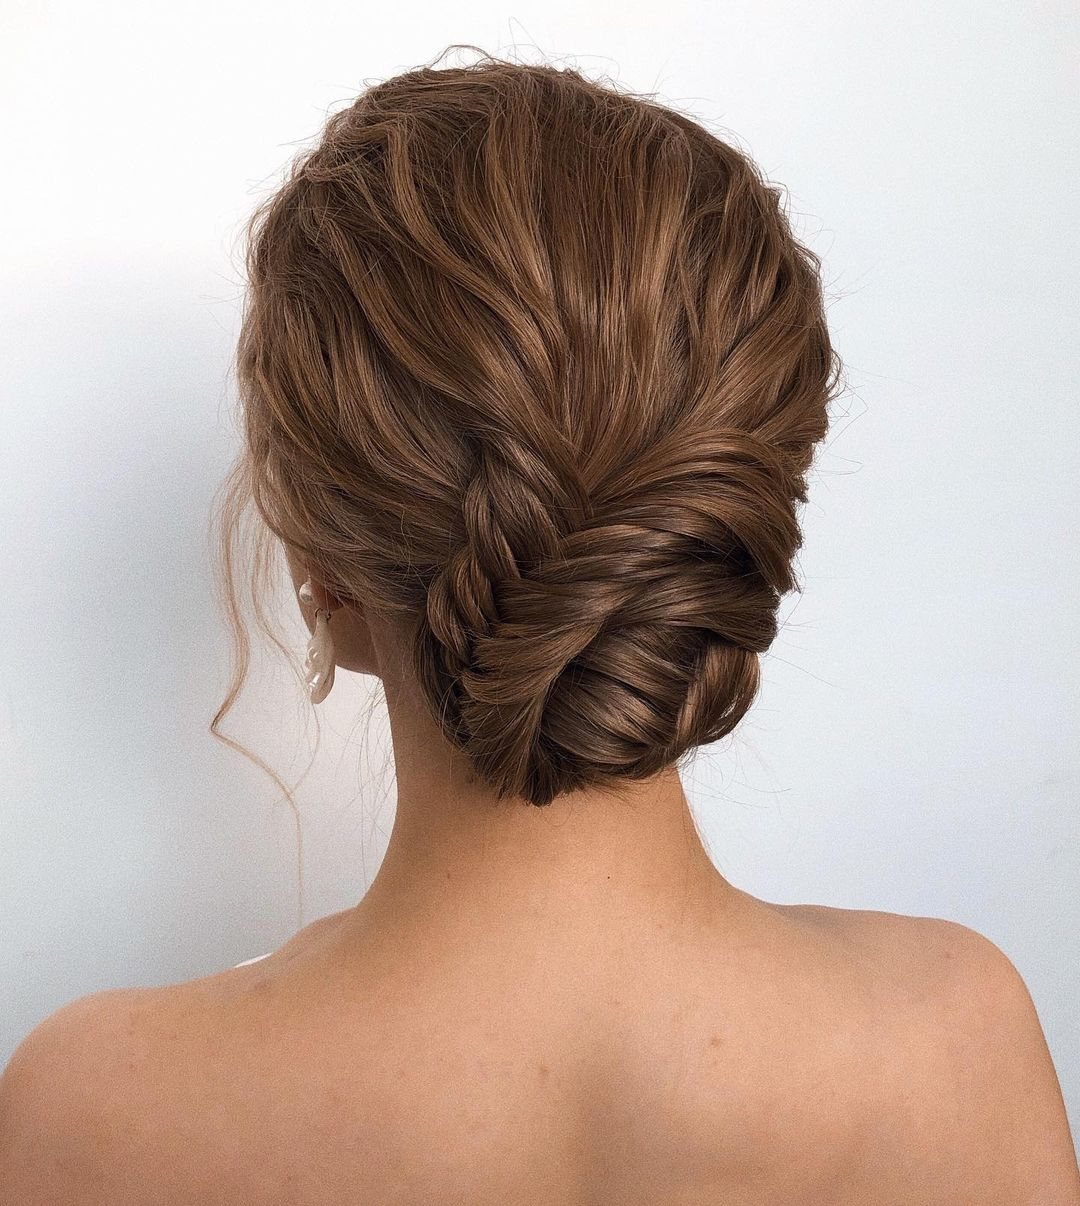 Low Bun with a Fishtail Braid